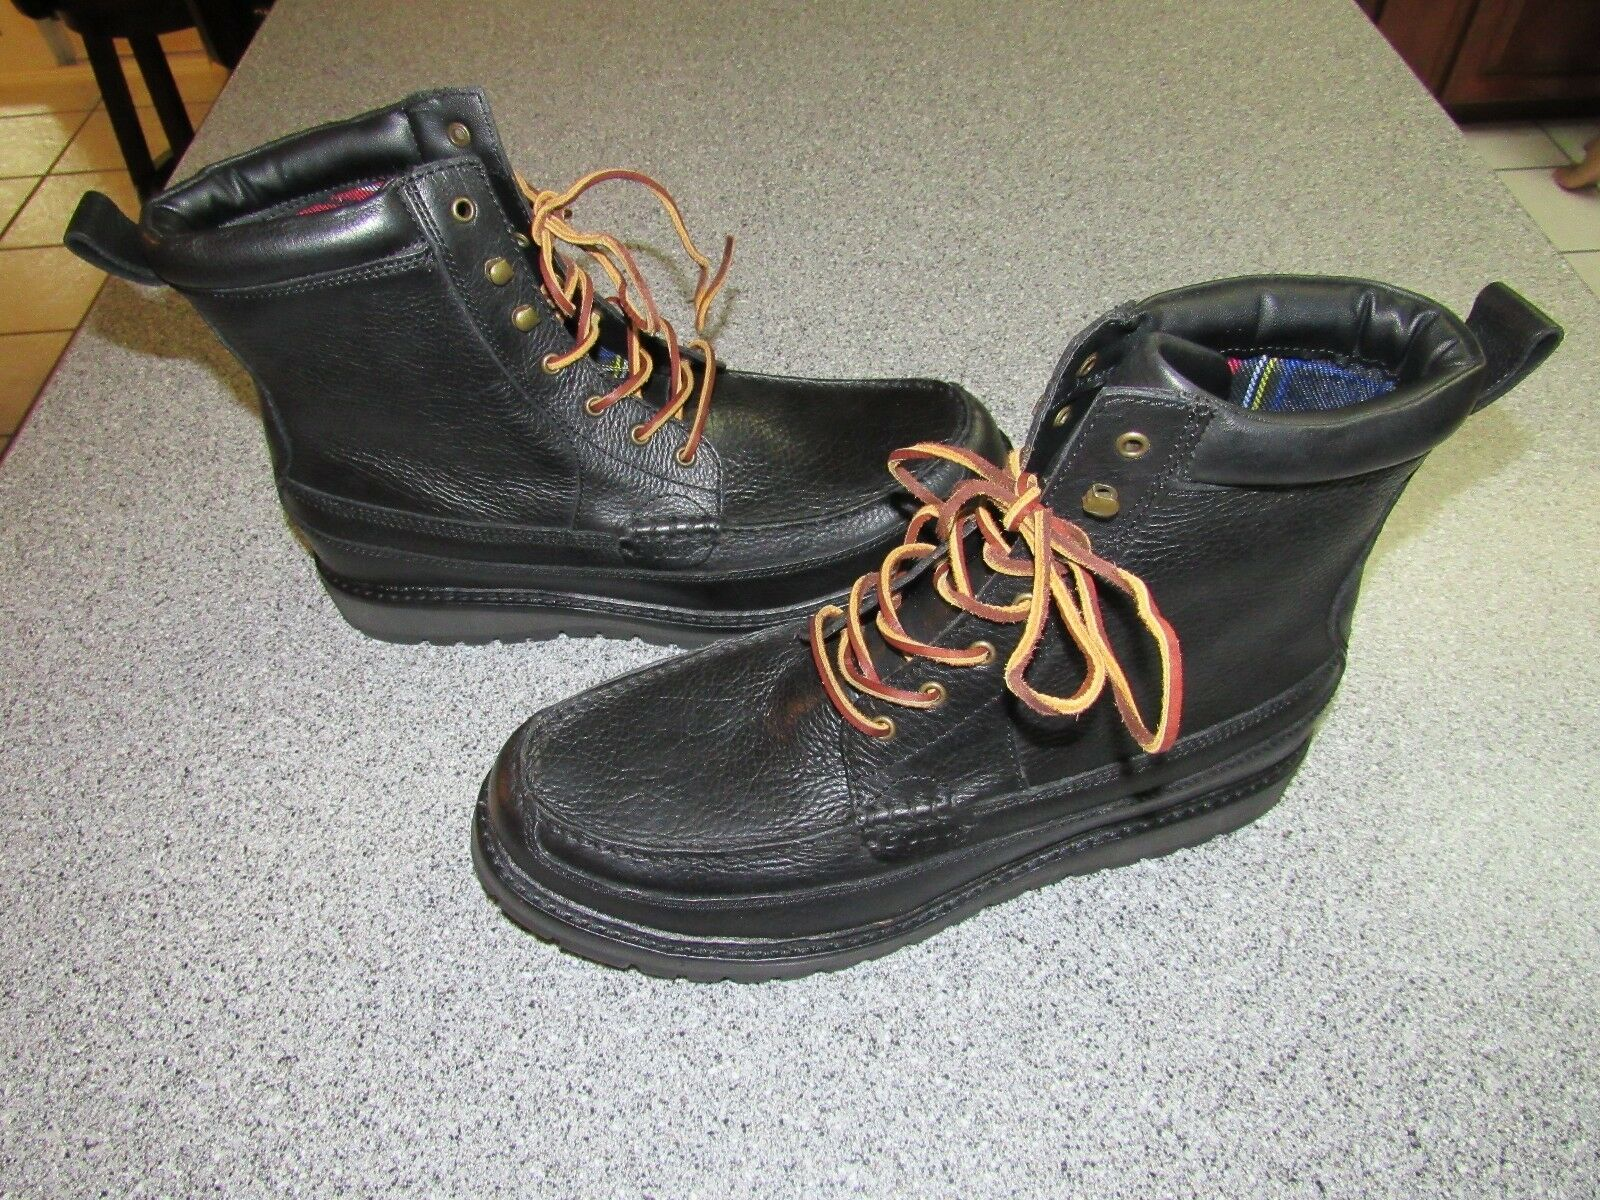 NWOB POLO RALPH LAUREN WILLINGCOTT BOOTS SIZE 13D BRAND NEW WITHOUT BOX